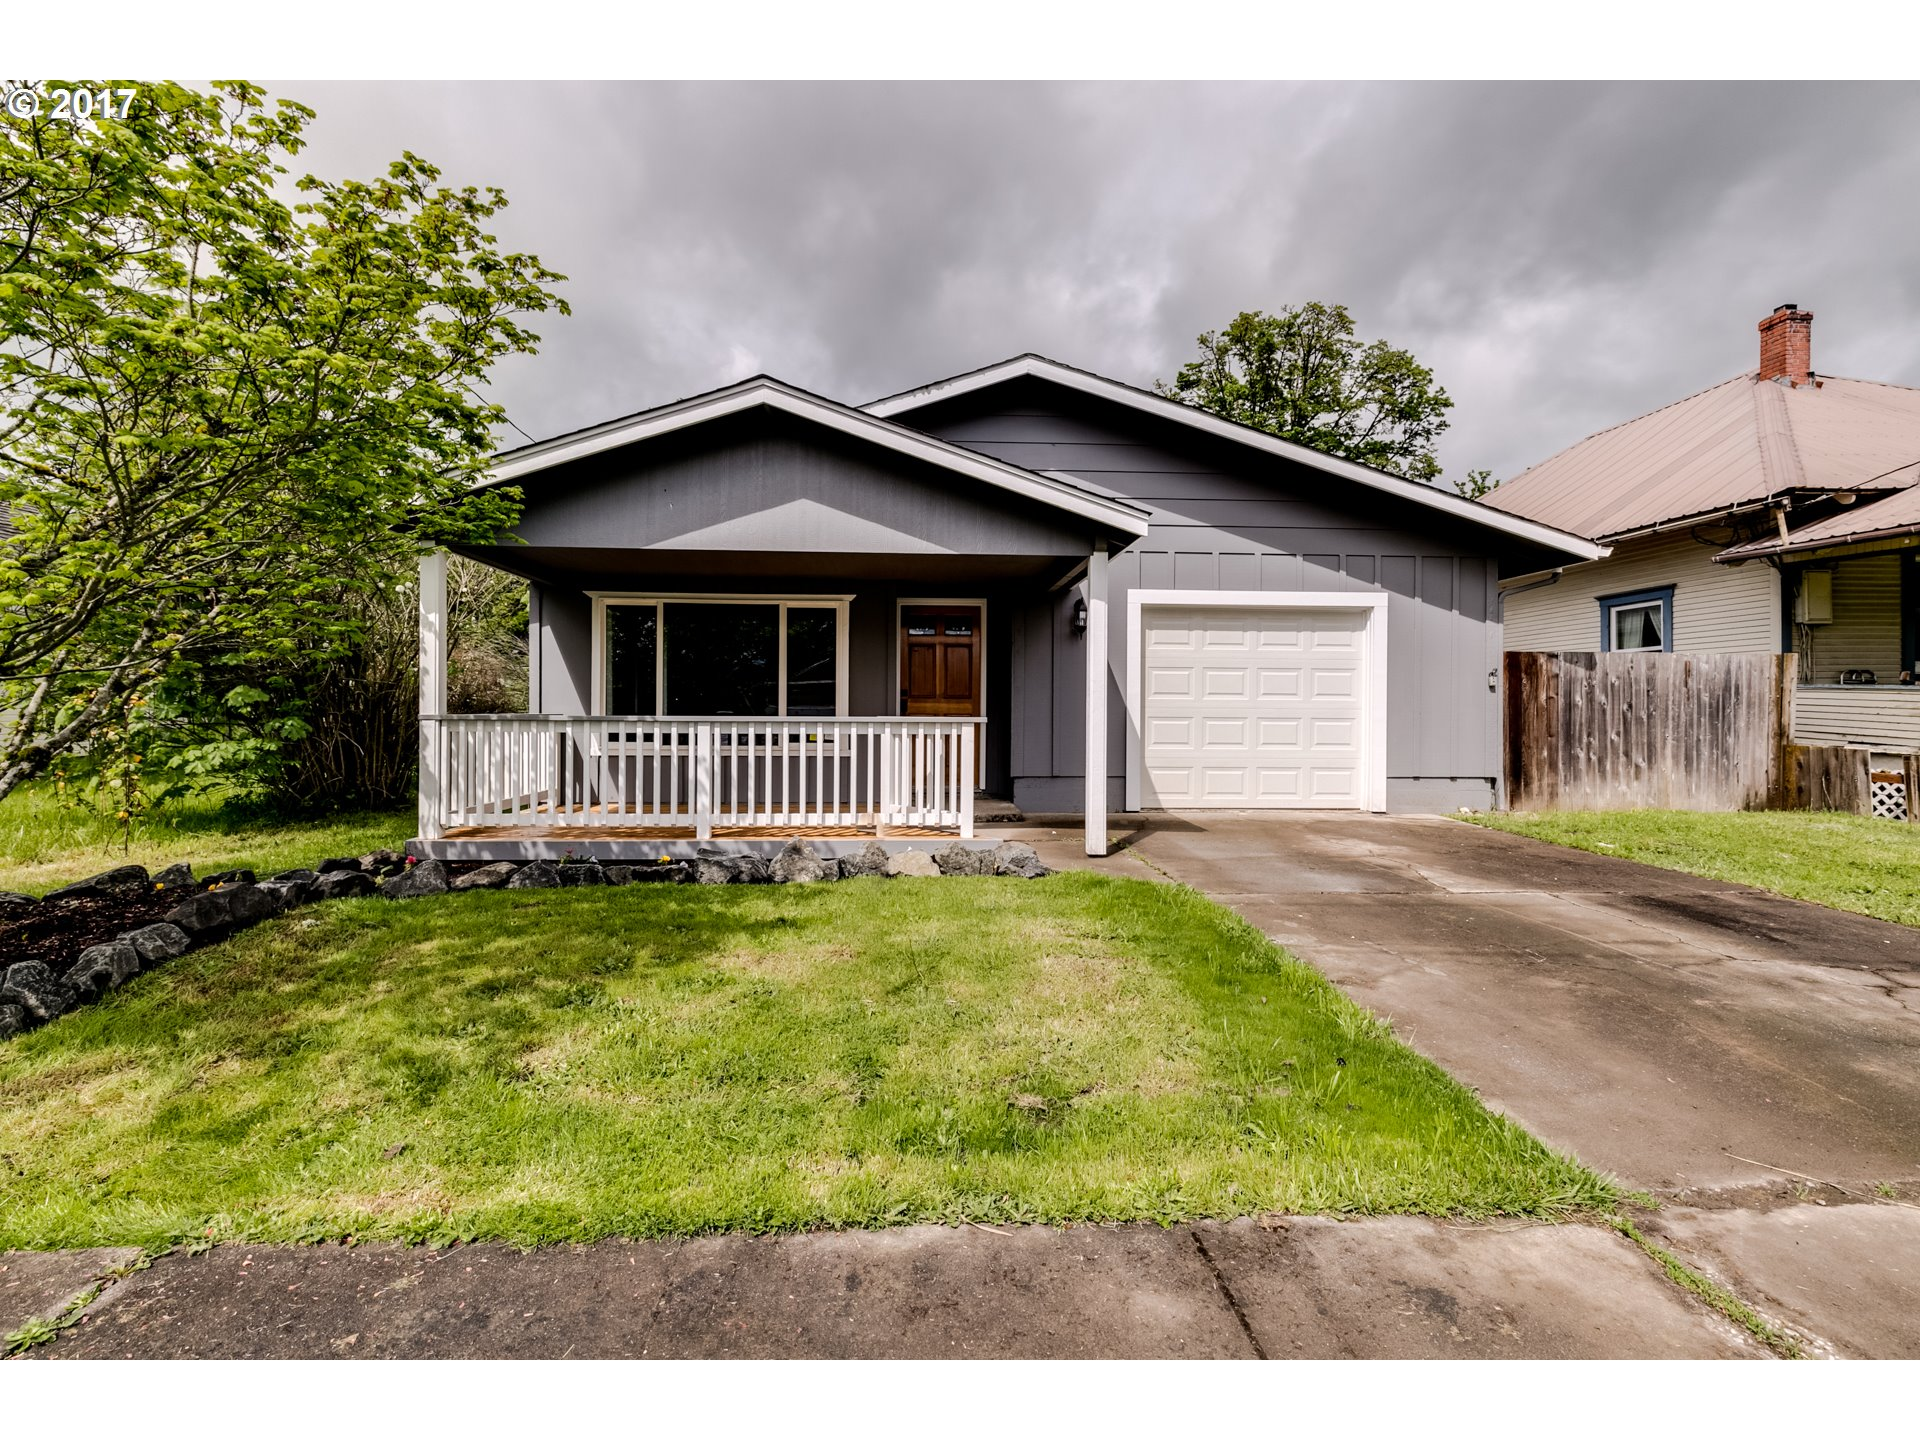 191 N 3RD ST, Creswell, OR 97426